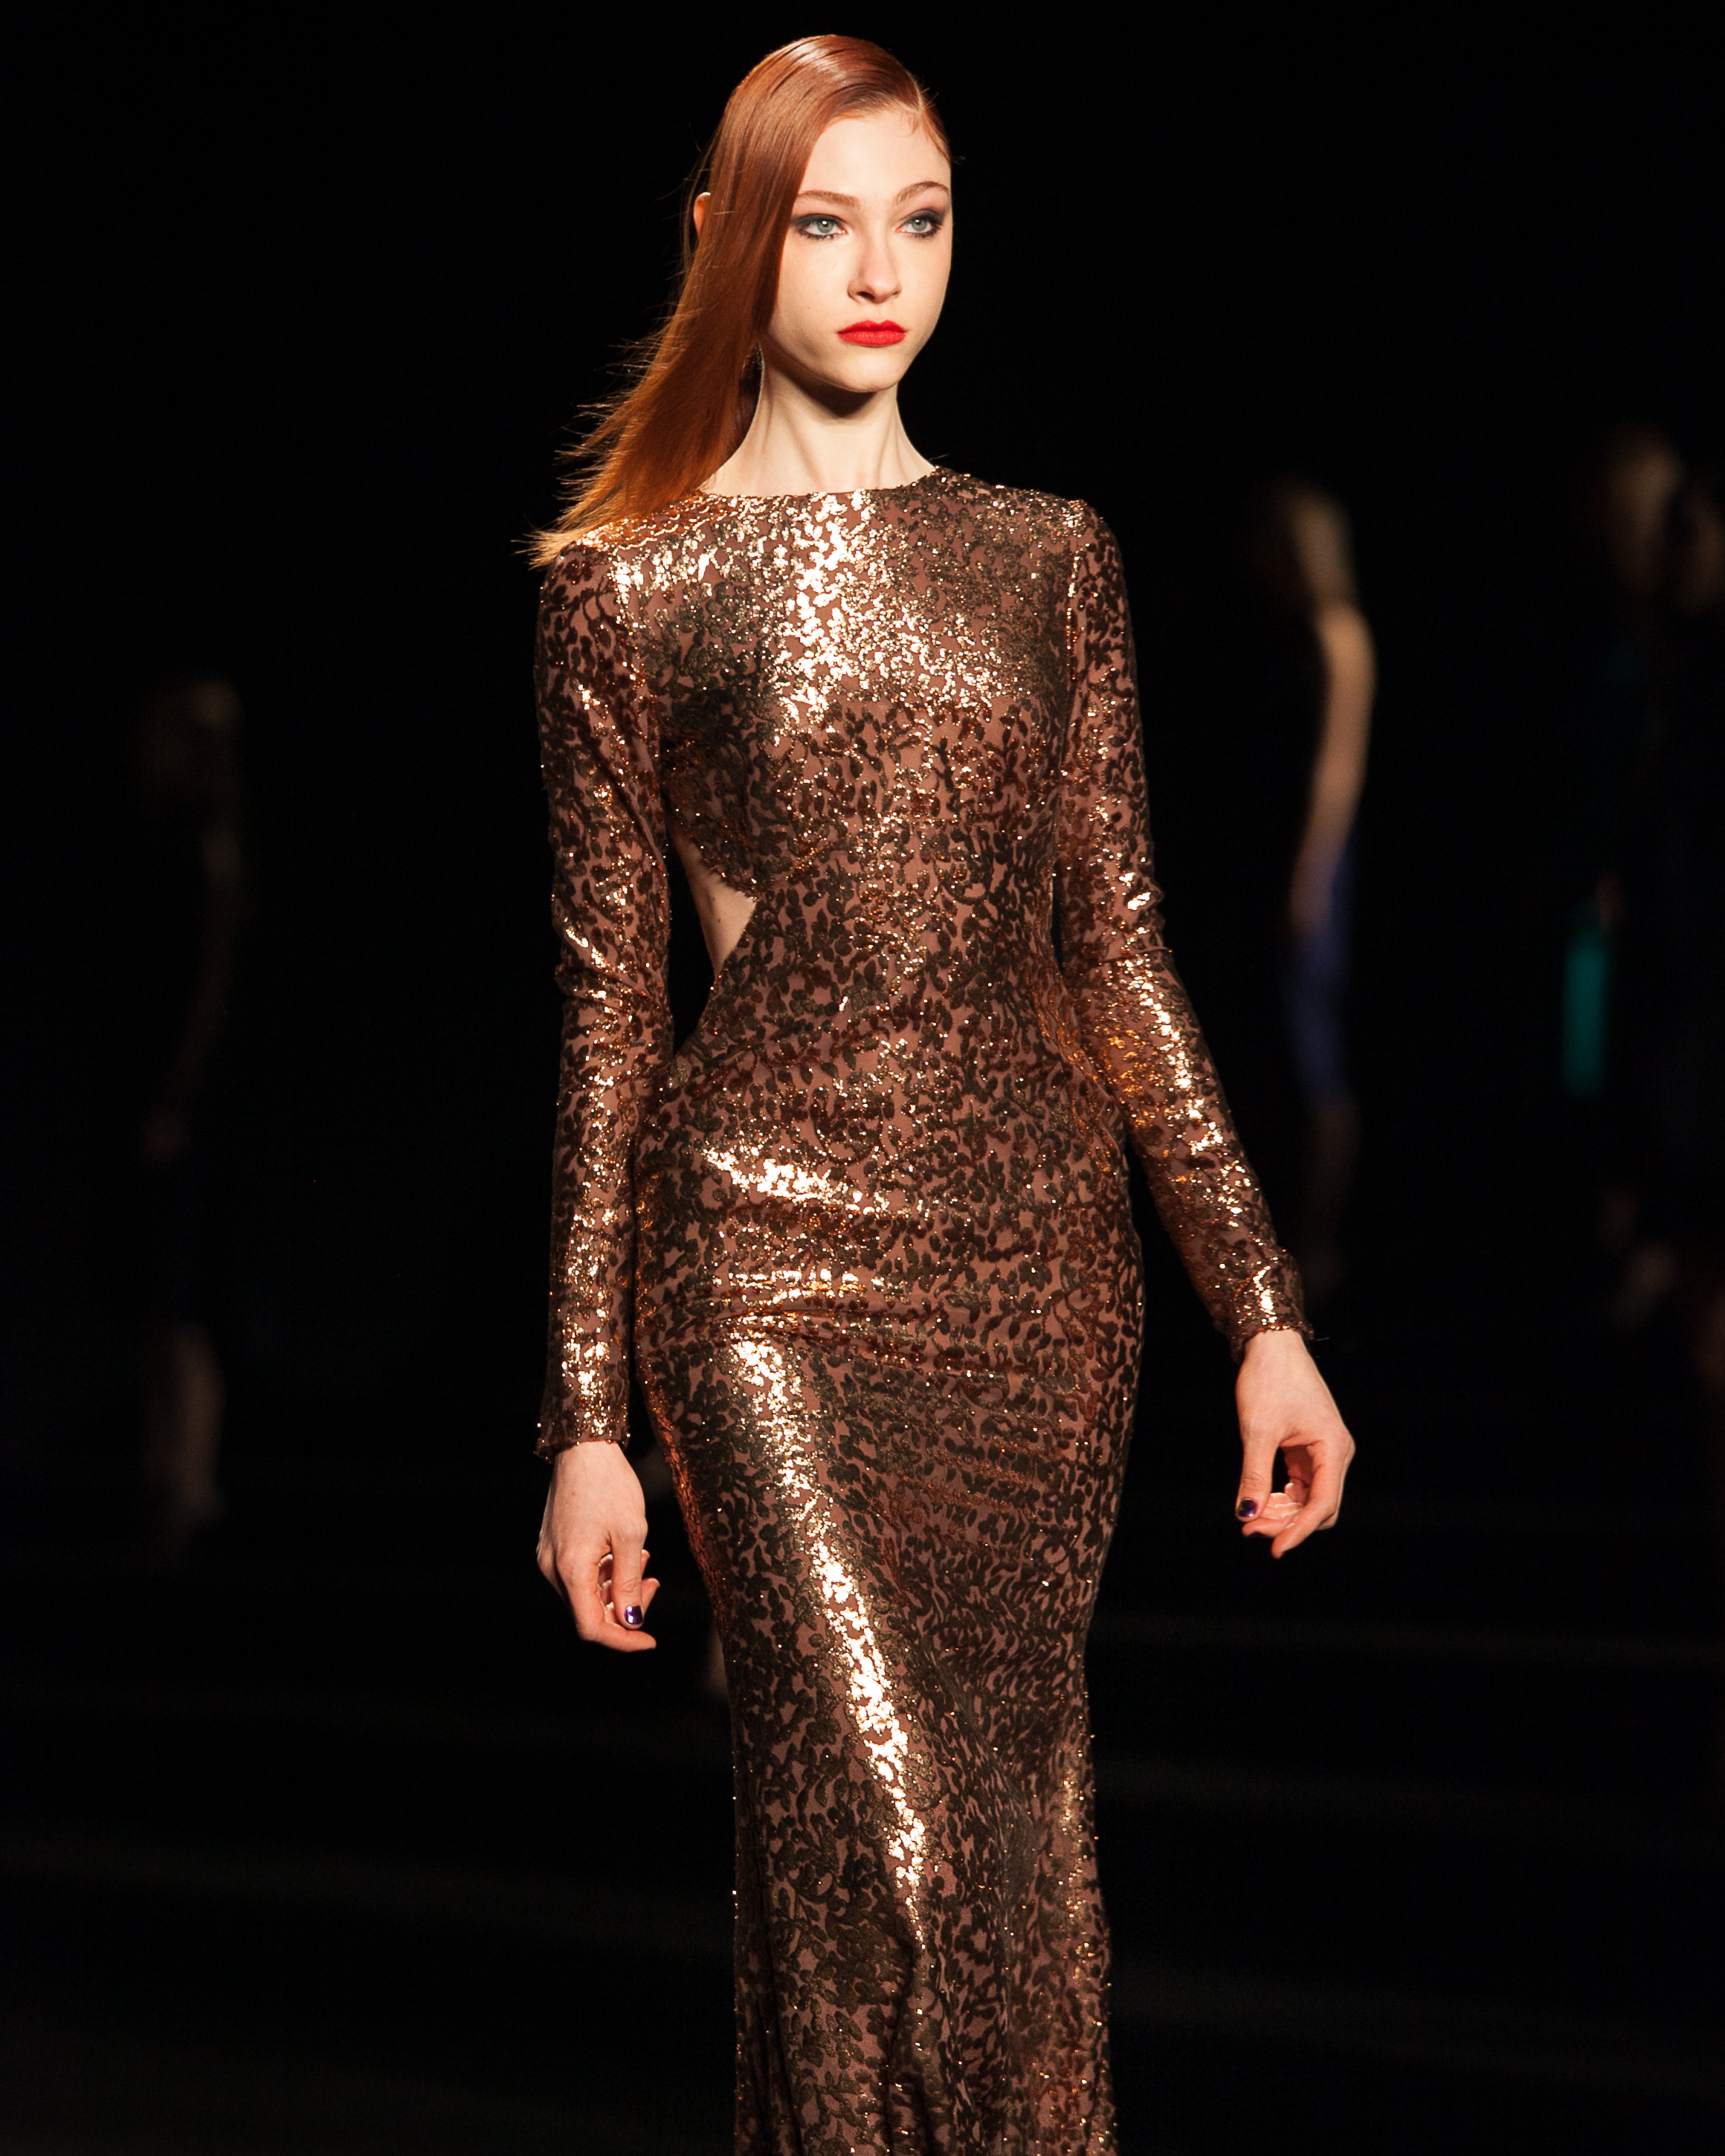 003-Monique-Lhuiller-New-York-Fashion-Week-Fall-Winter-2015-Shana-Schnur-Photography-003.jpg